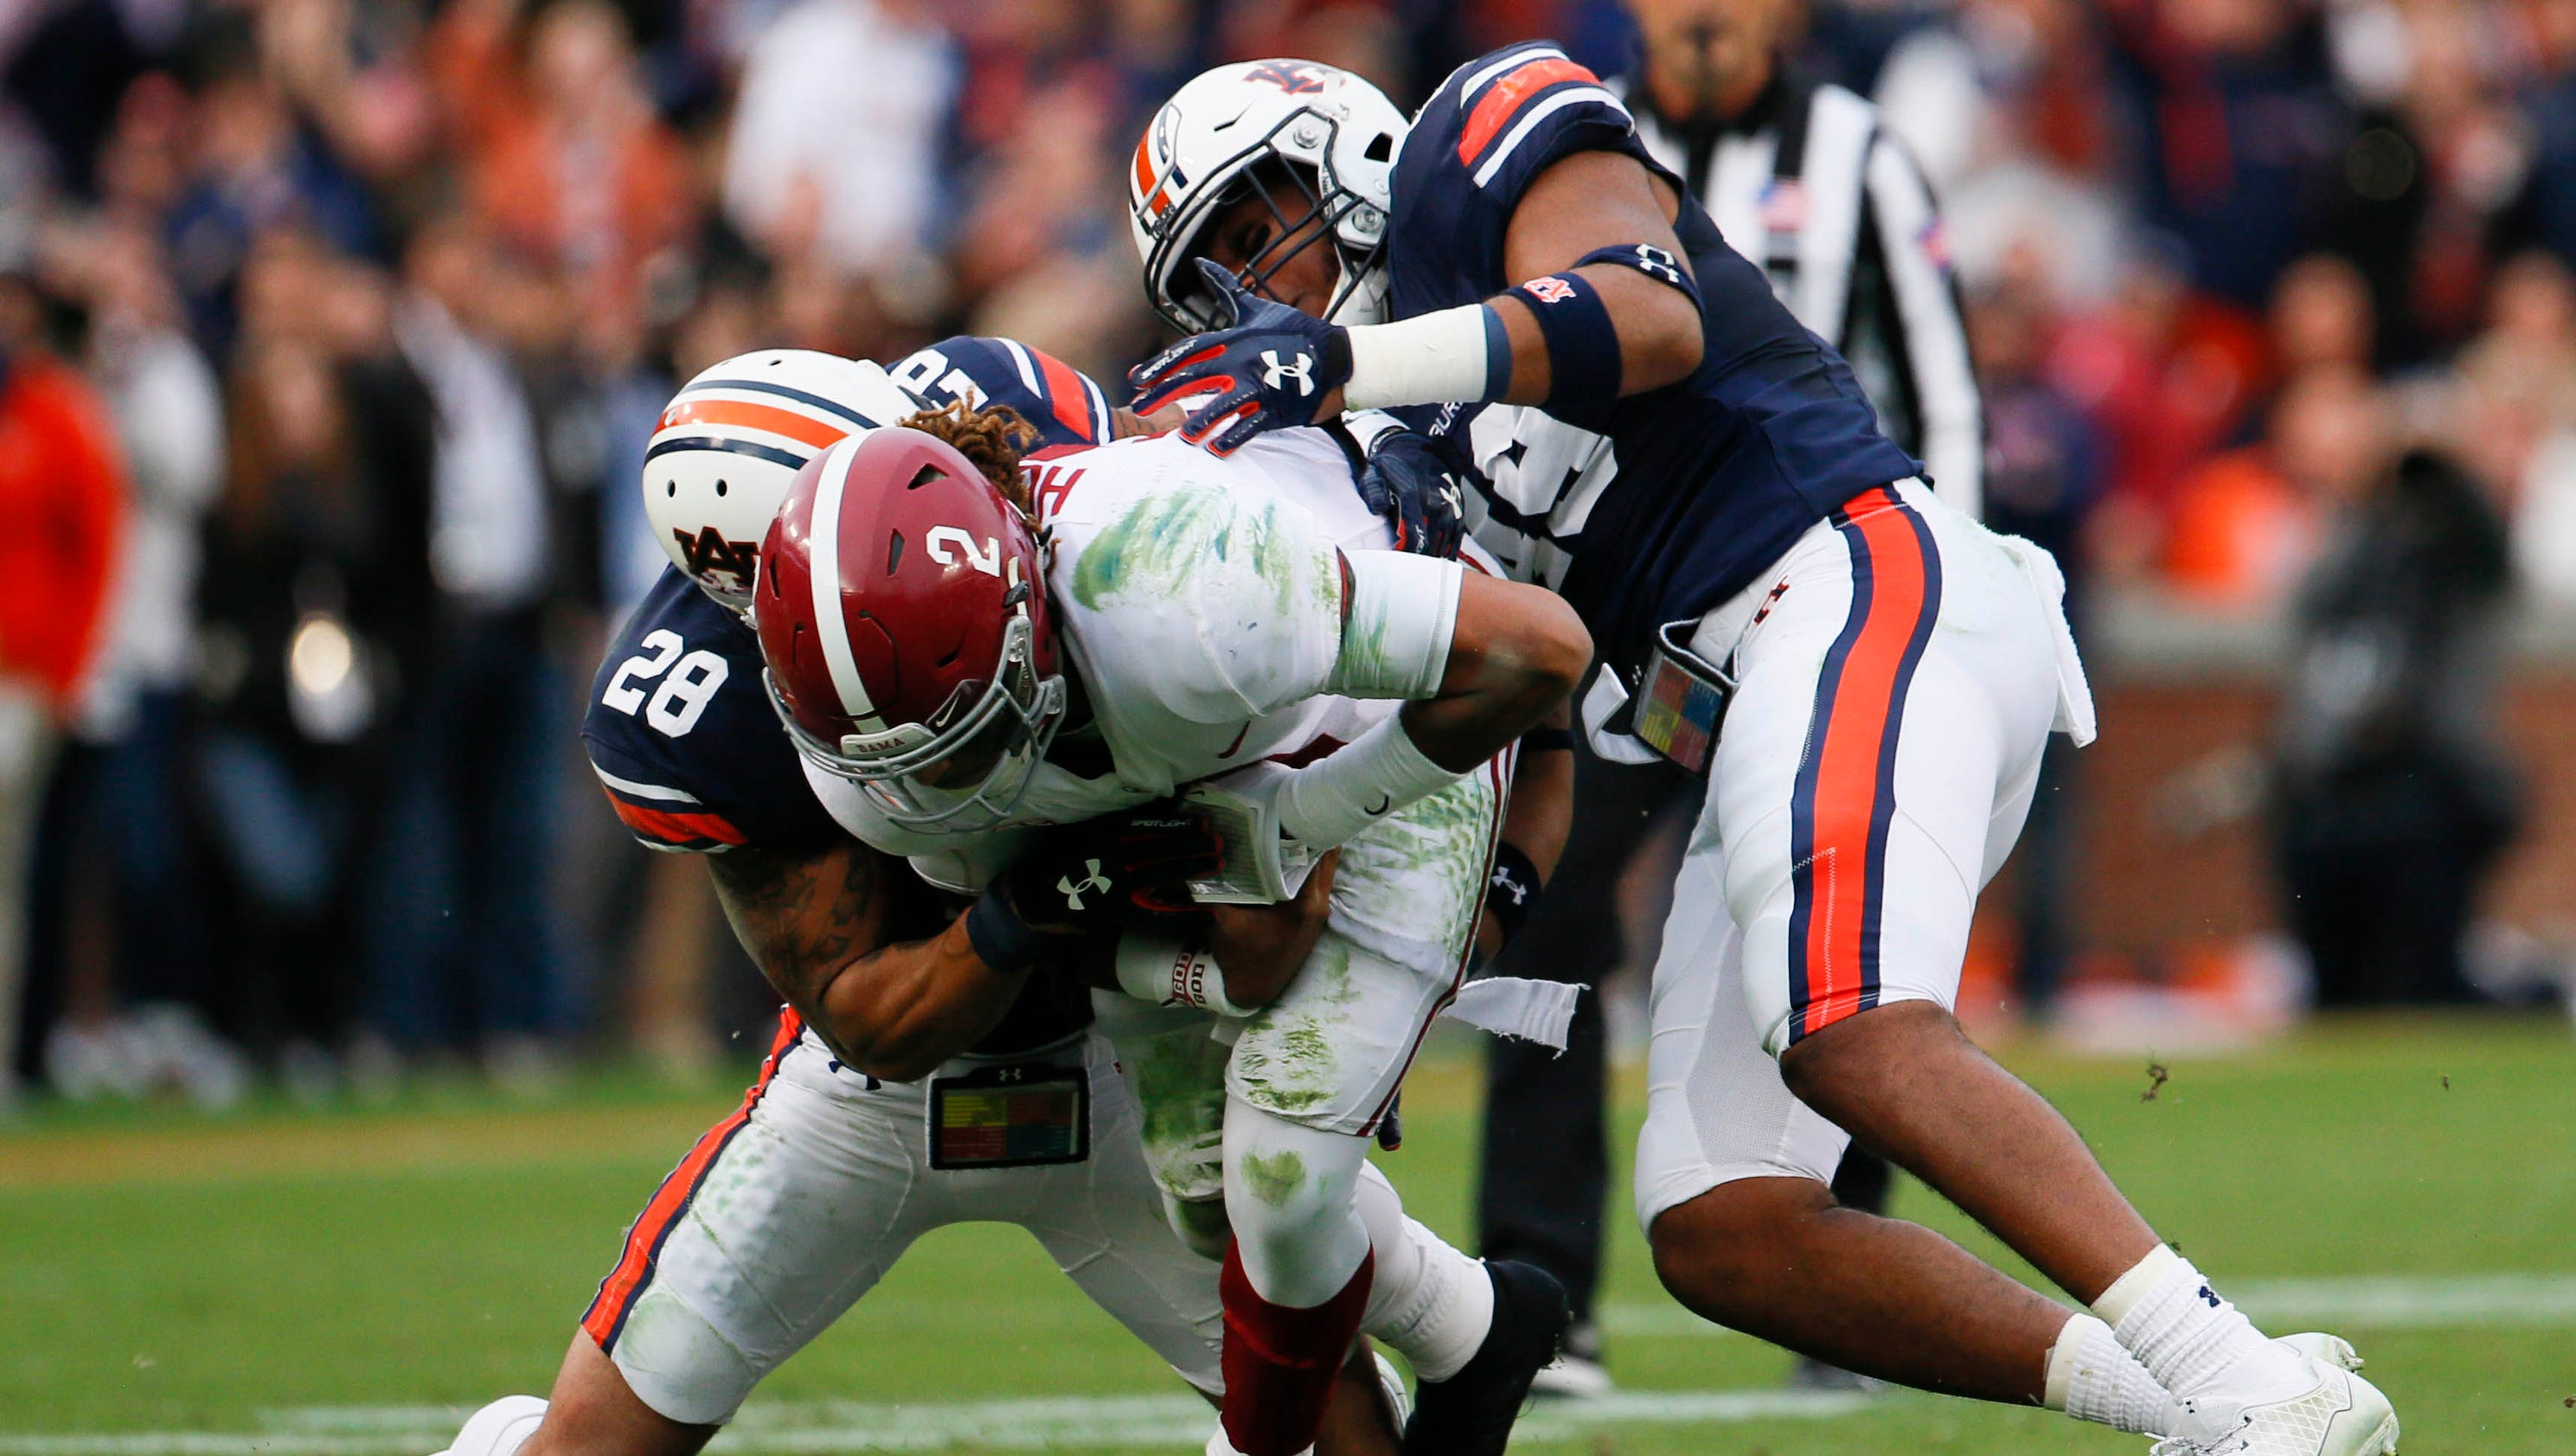 Auburn knocks off Alabama clinches spot in SEC title game